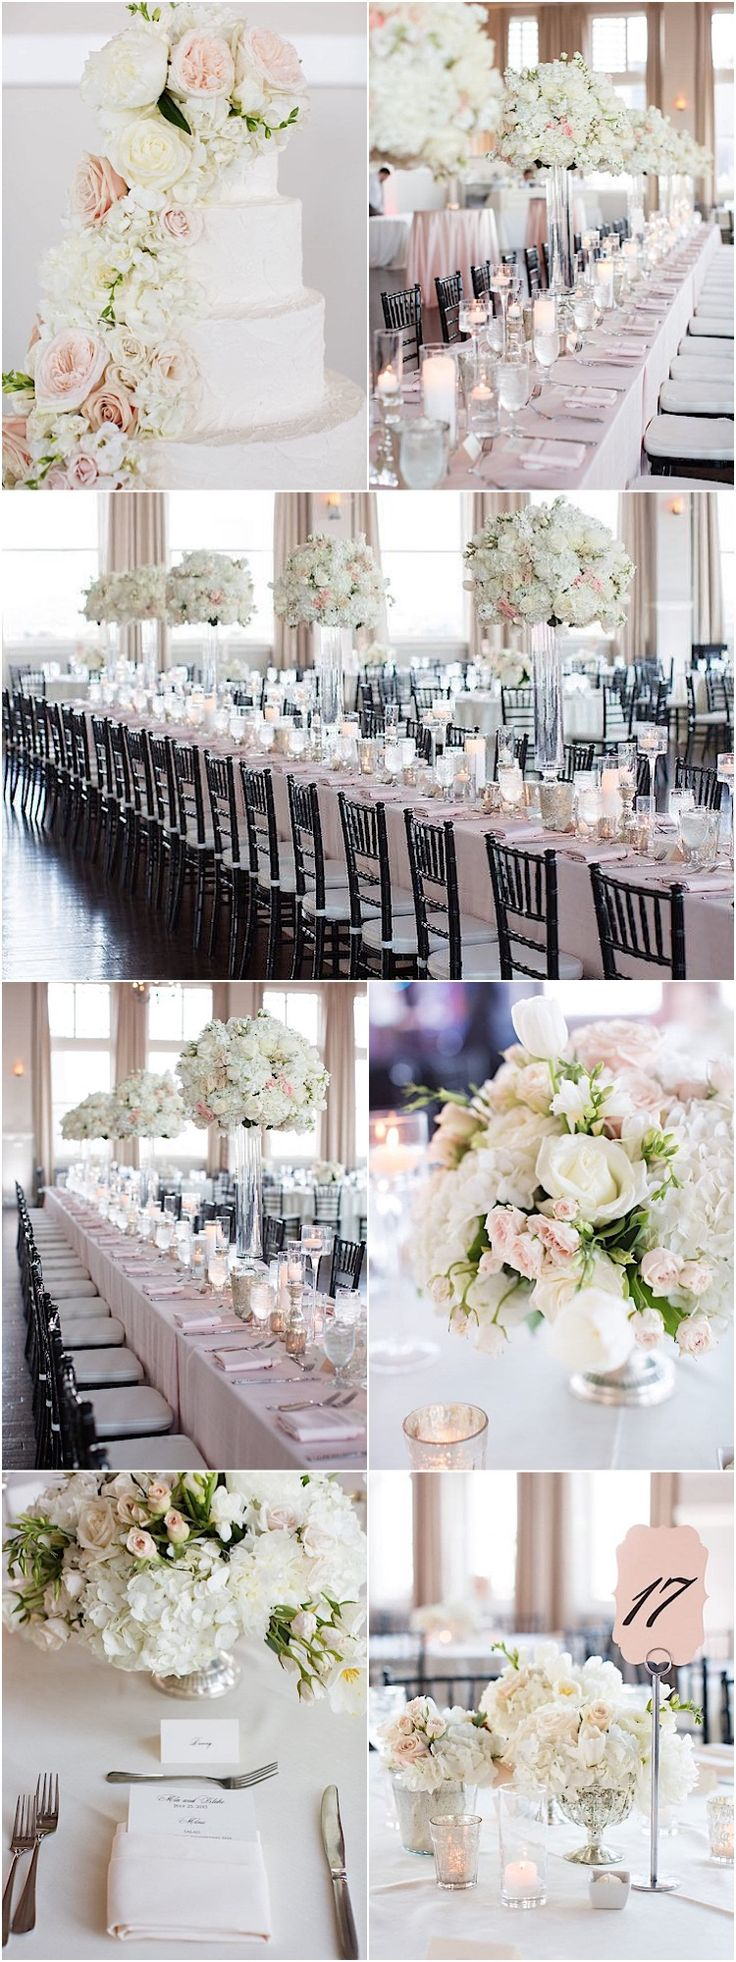 photo: Sarah Kate Photography; Glamorous white ballroom wedding reception idea;